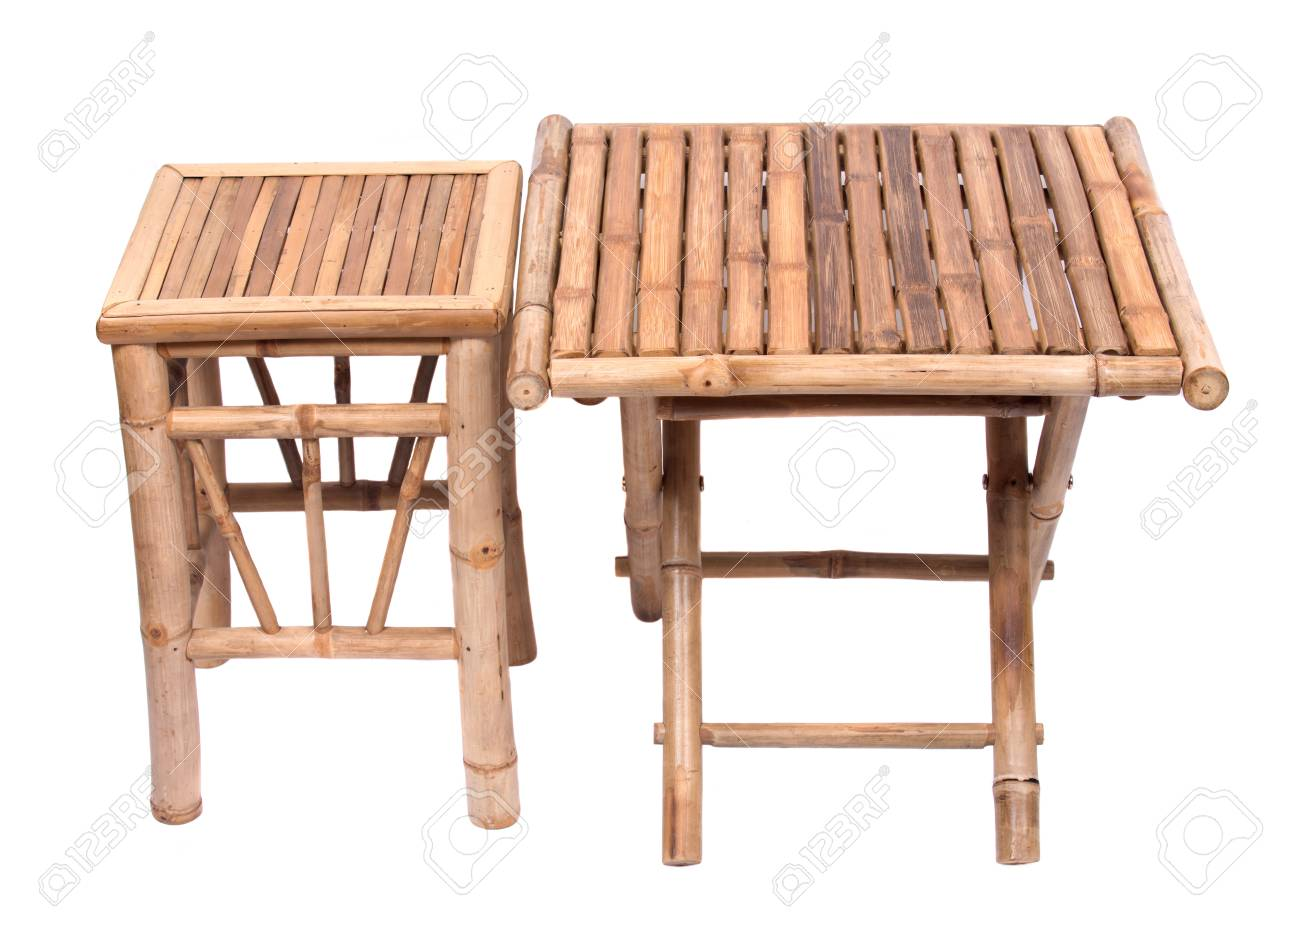 - Natural Bamboo Folding Table With Chair Isolated On White